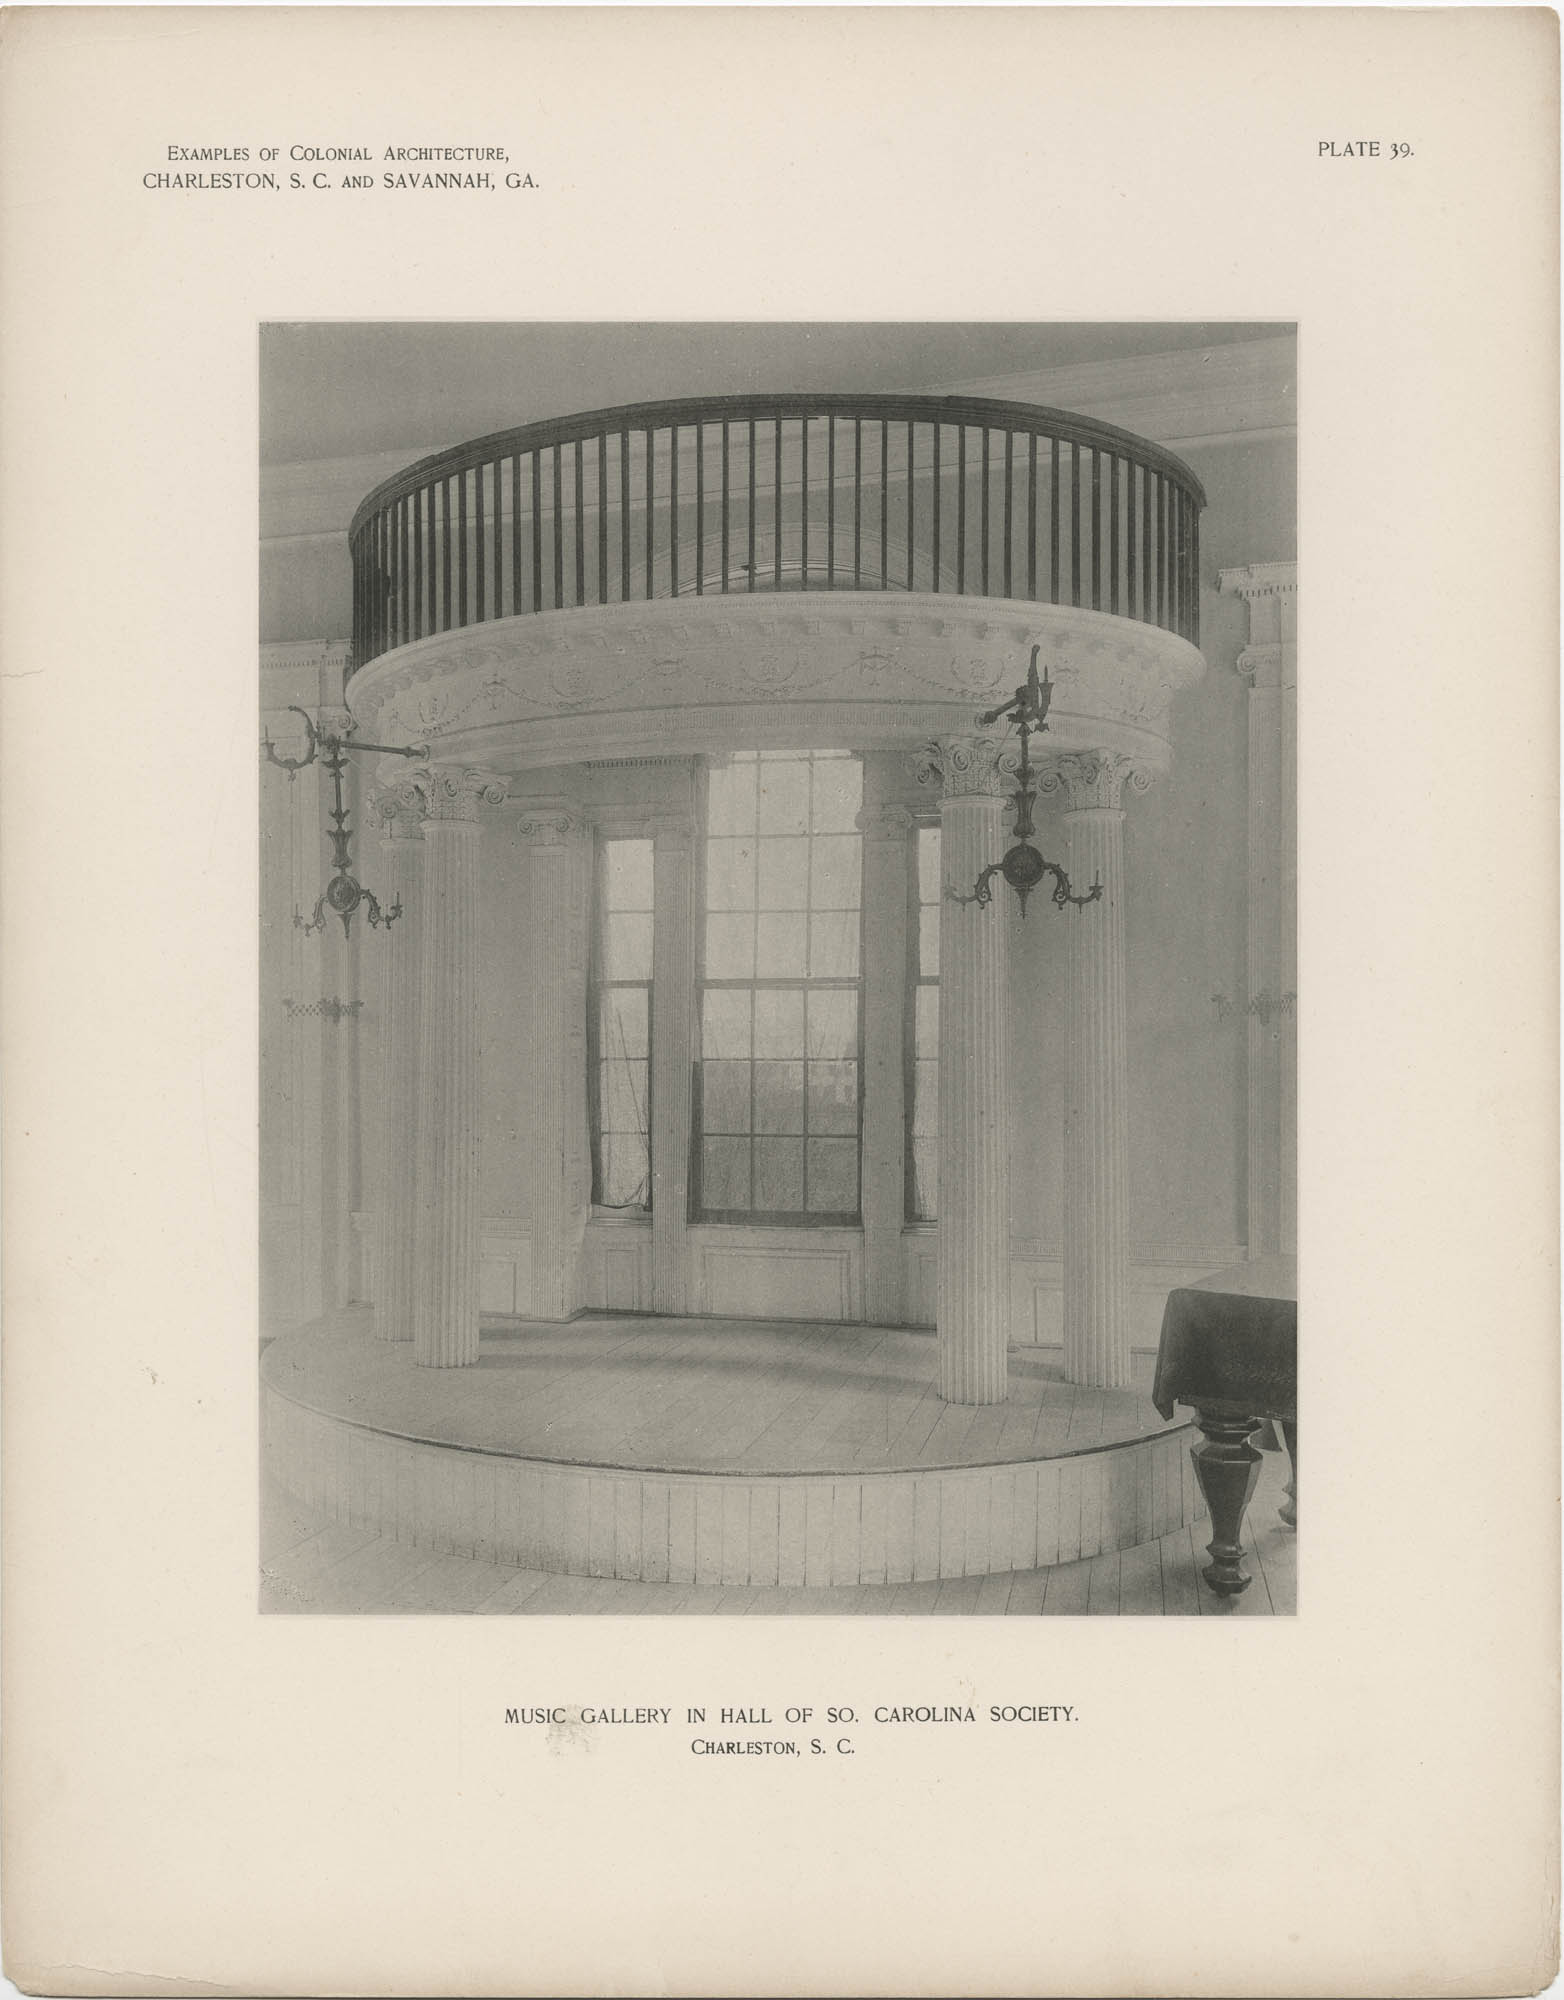 Plate 39: Music Gallery in Hall of So. Carolina Society, Charleston, S.C.